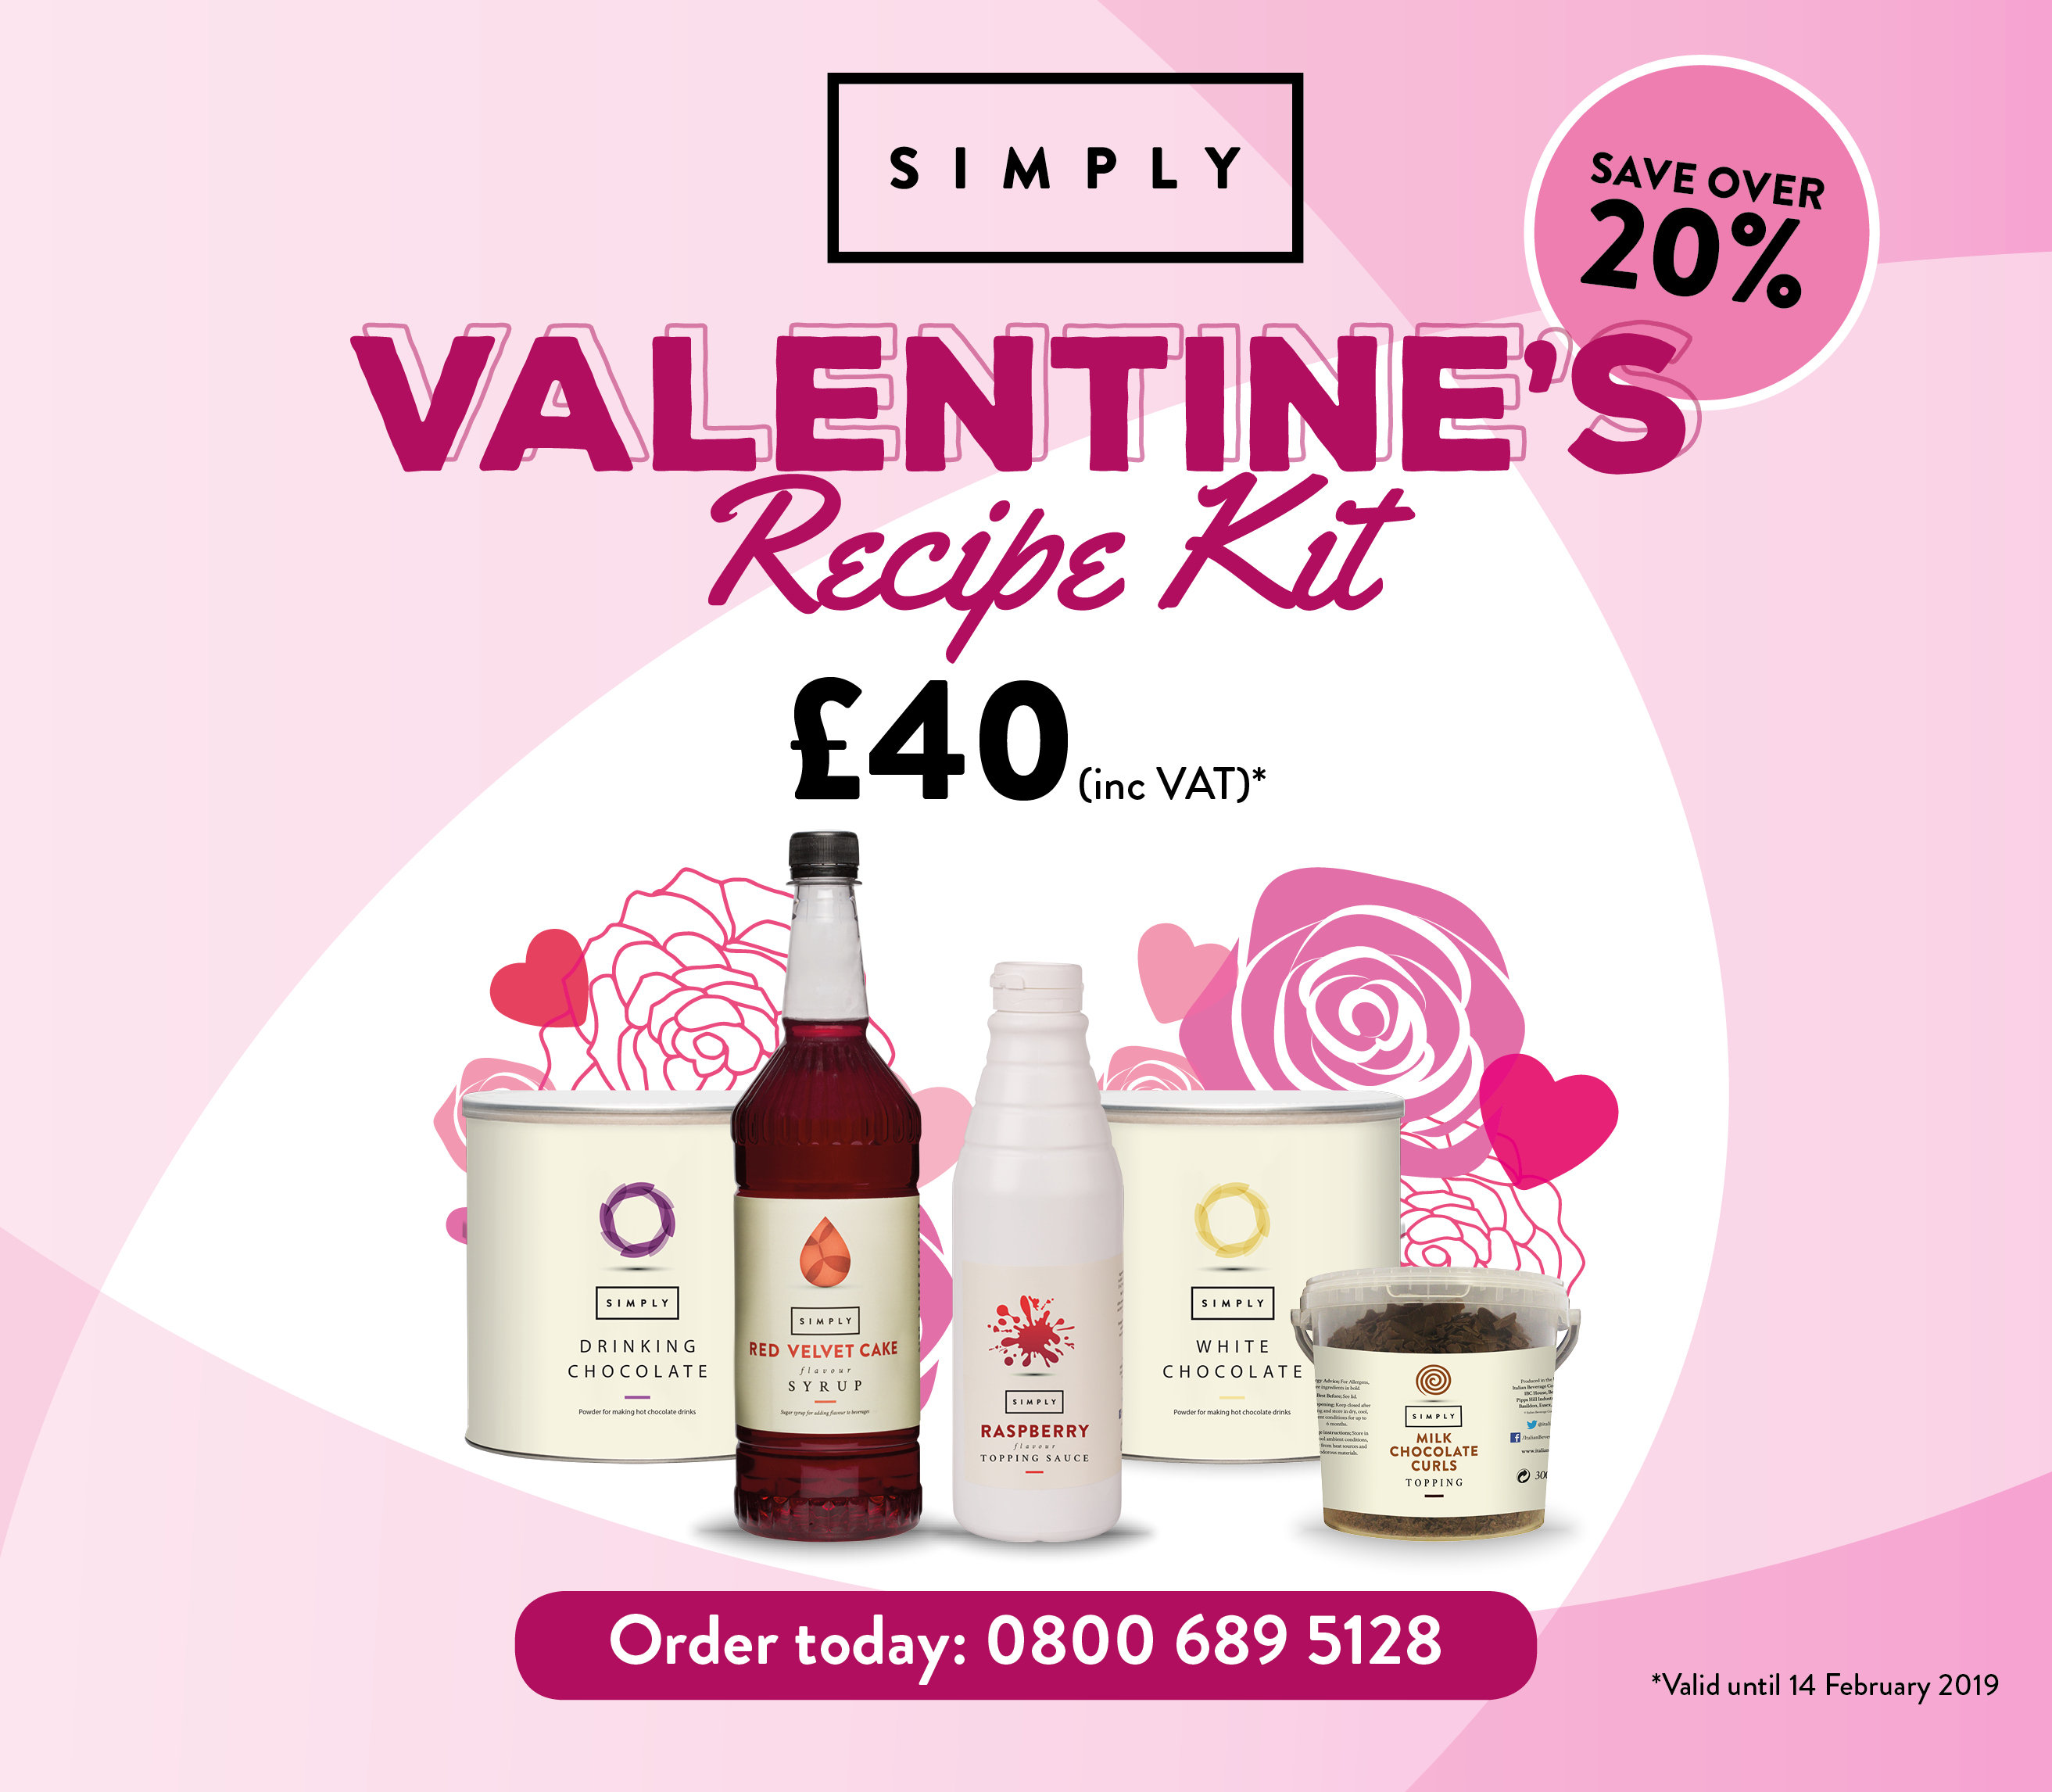 Valentines recipe kit